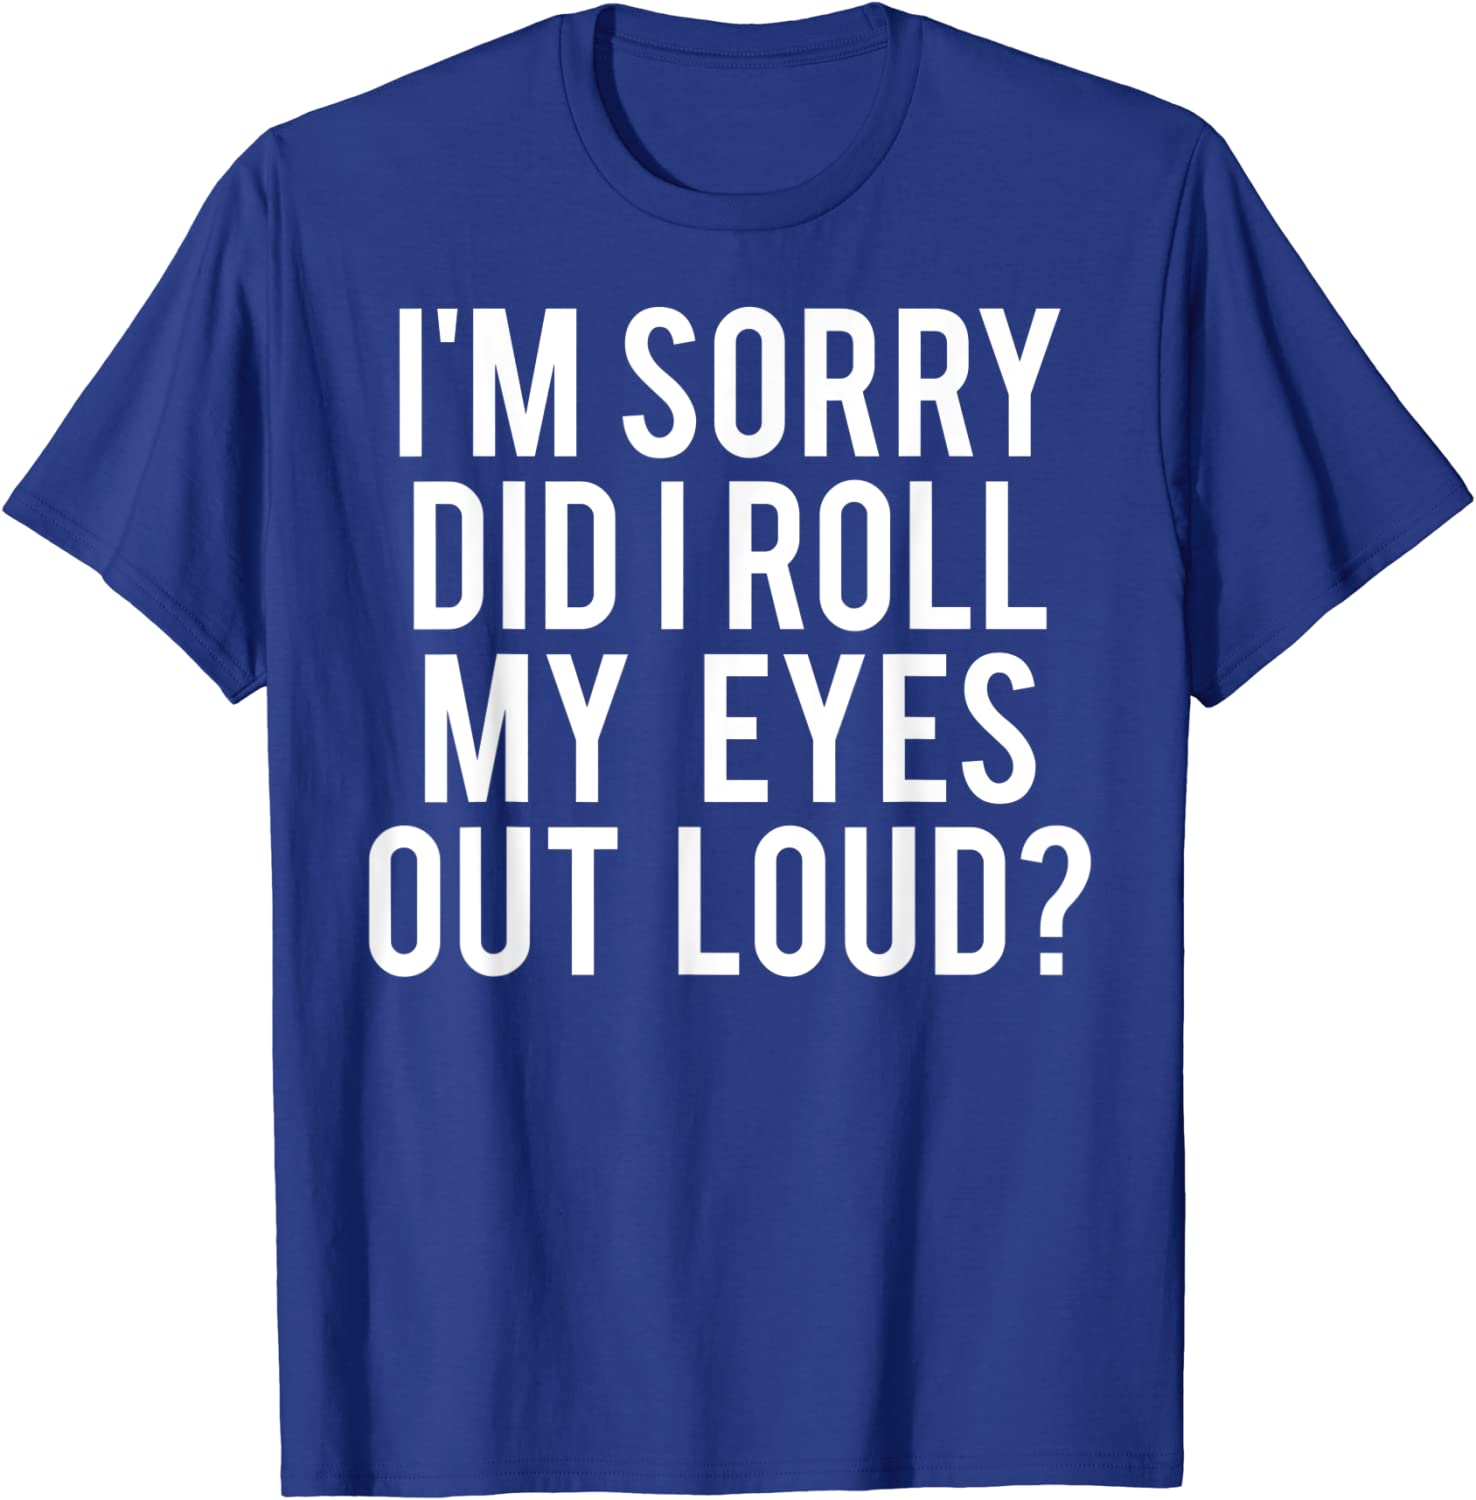 Did I roll my eyes out loud T Shirt Funny sarcastic gift tee-TH